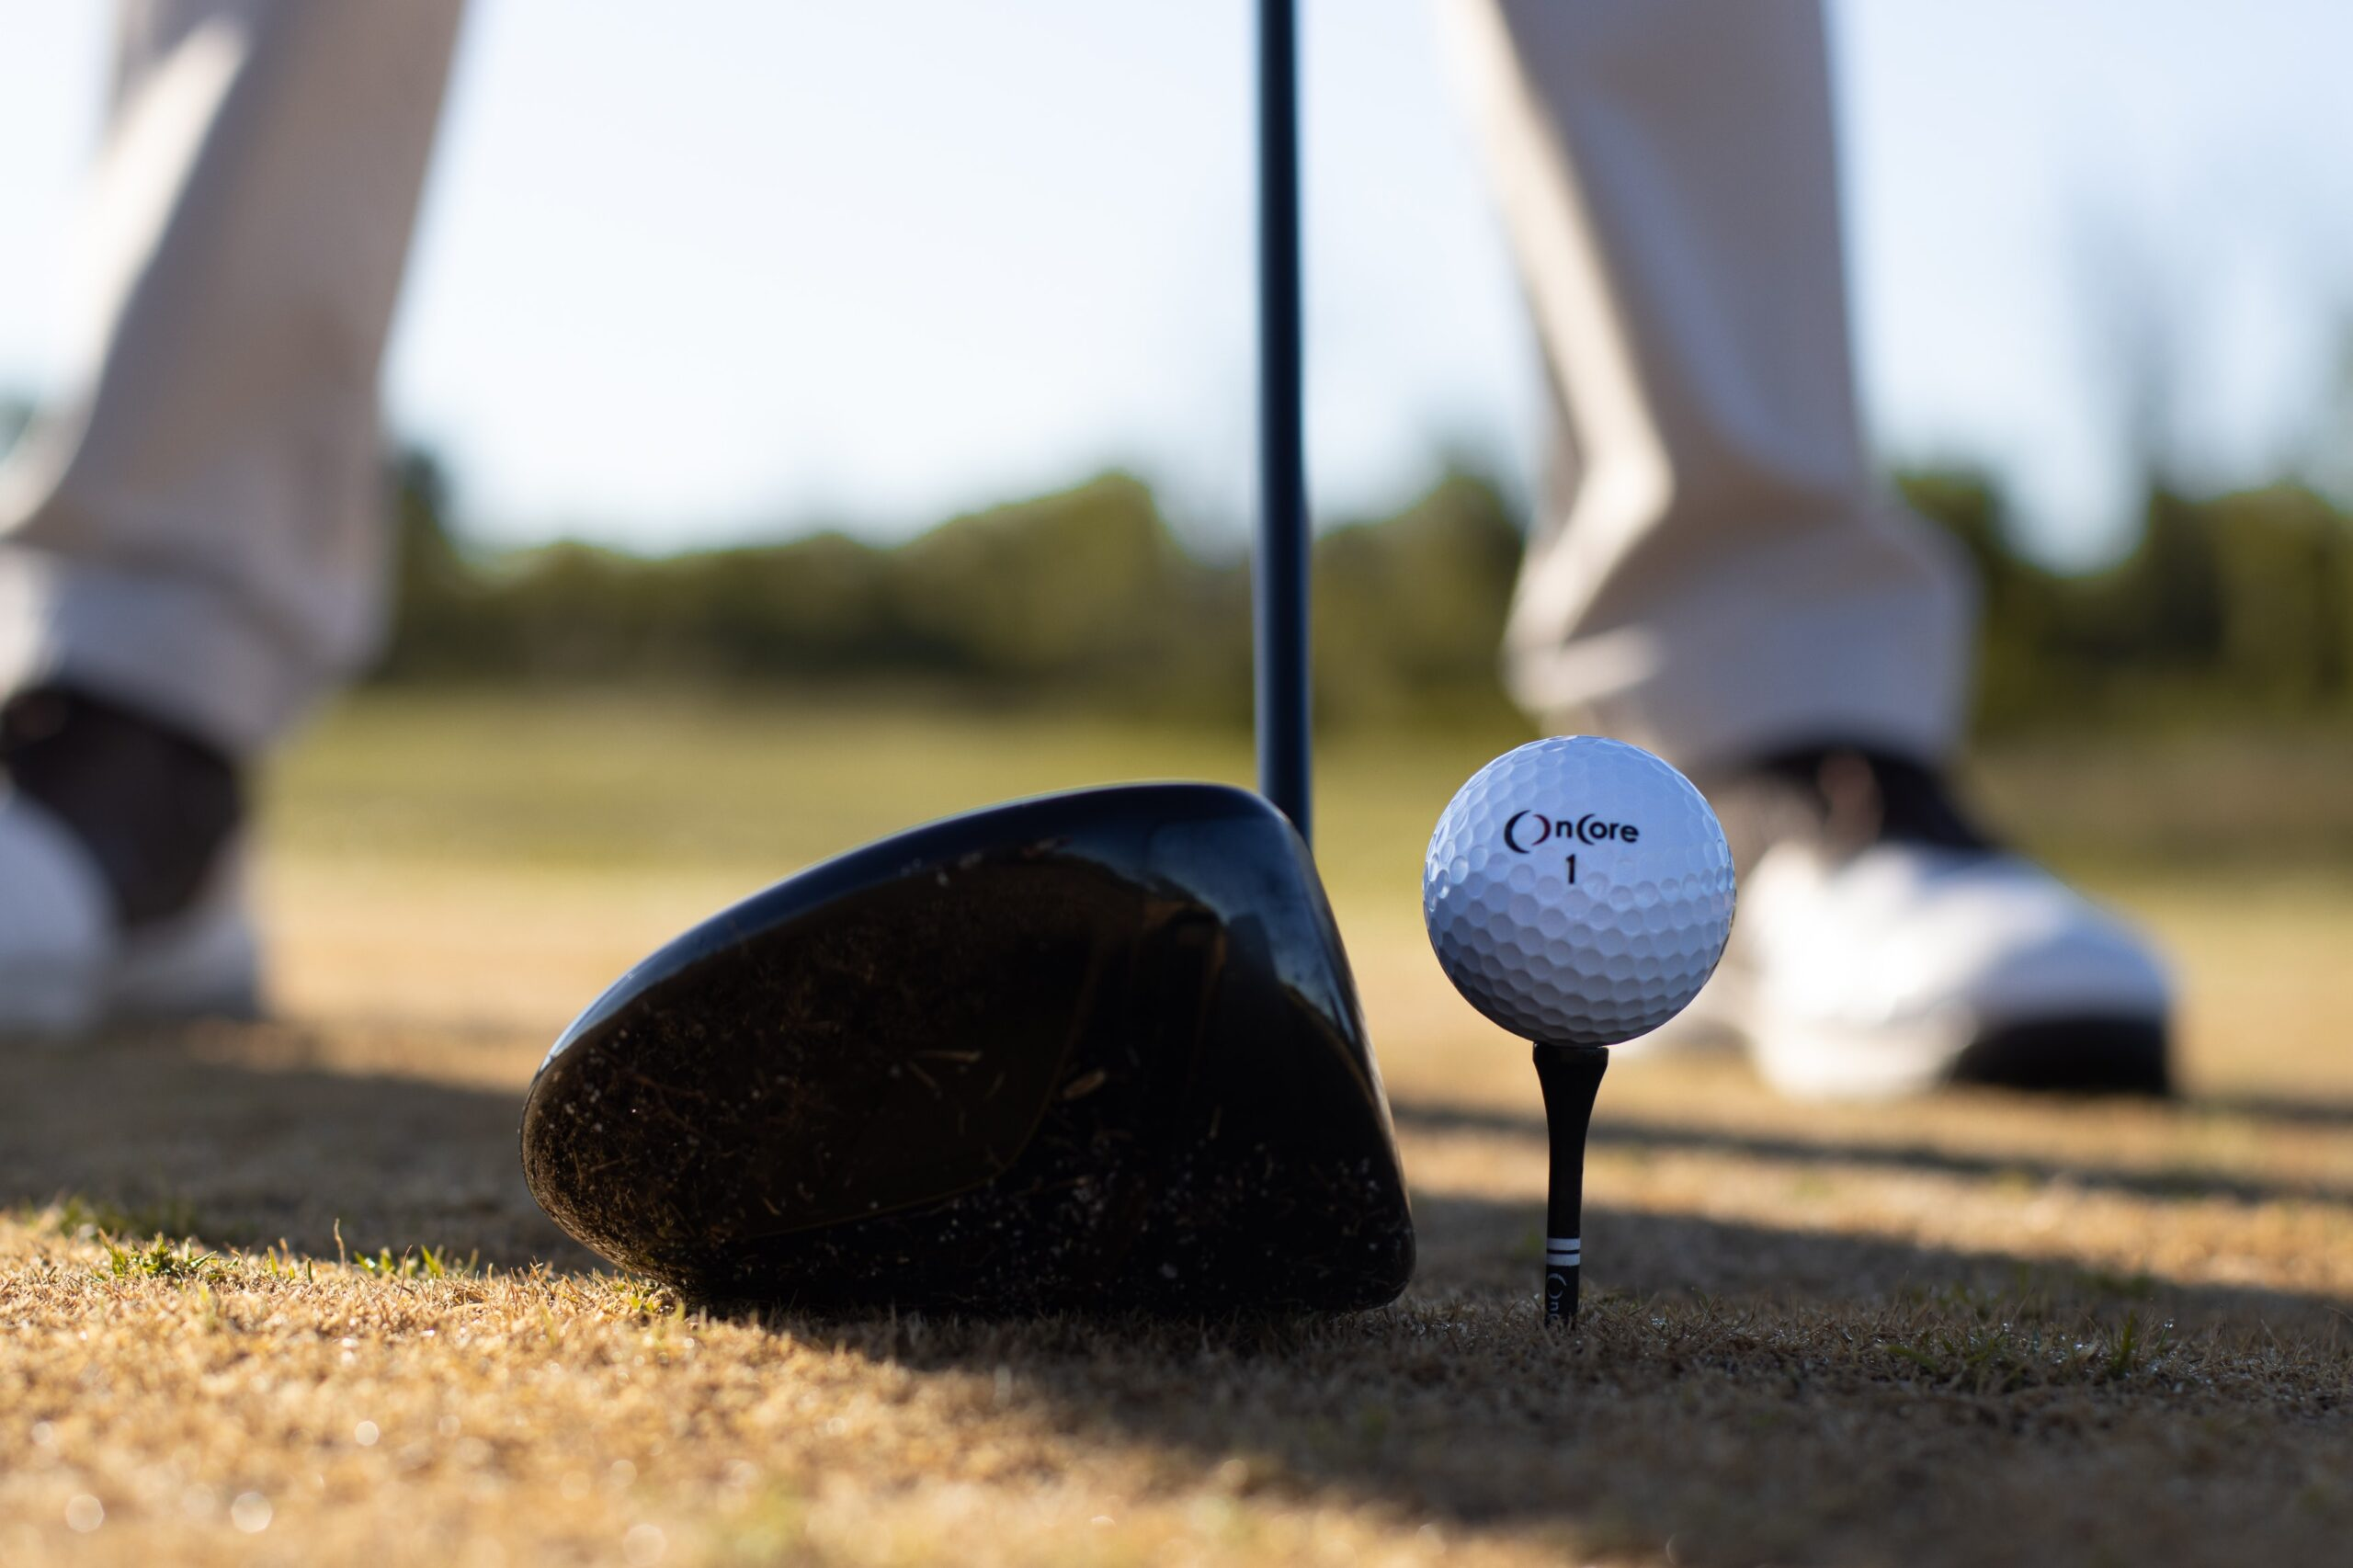 Should more golfers use their 3-wood off the tee? If so, why?